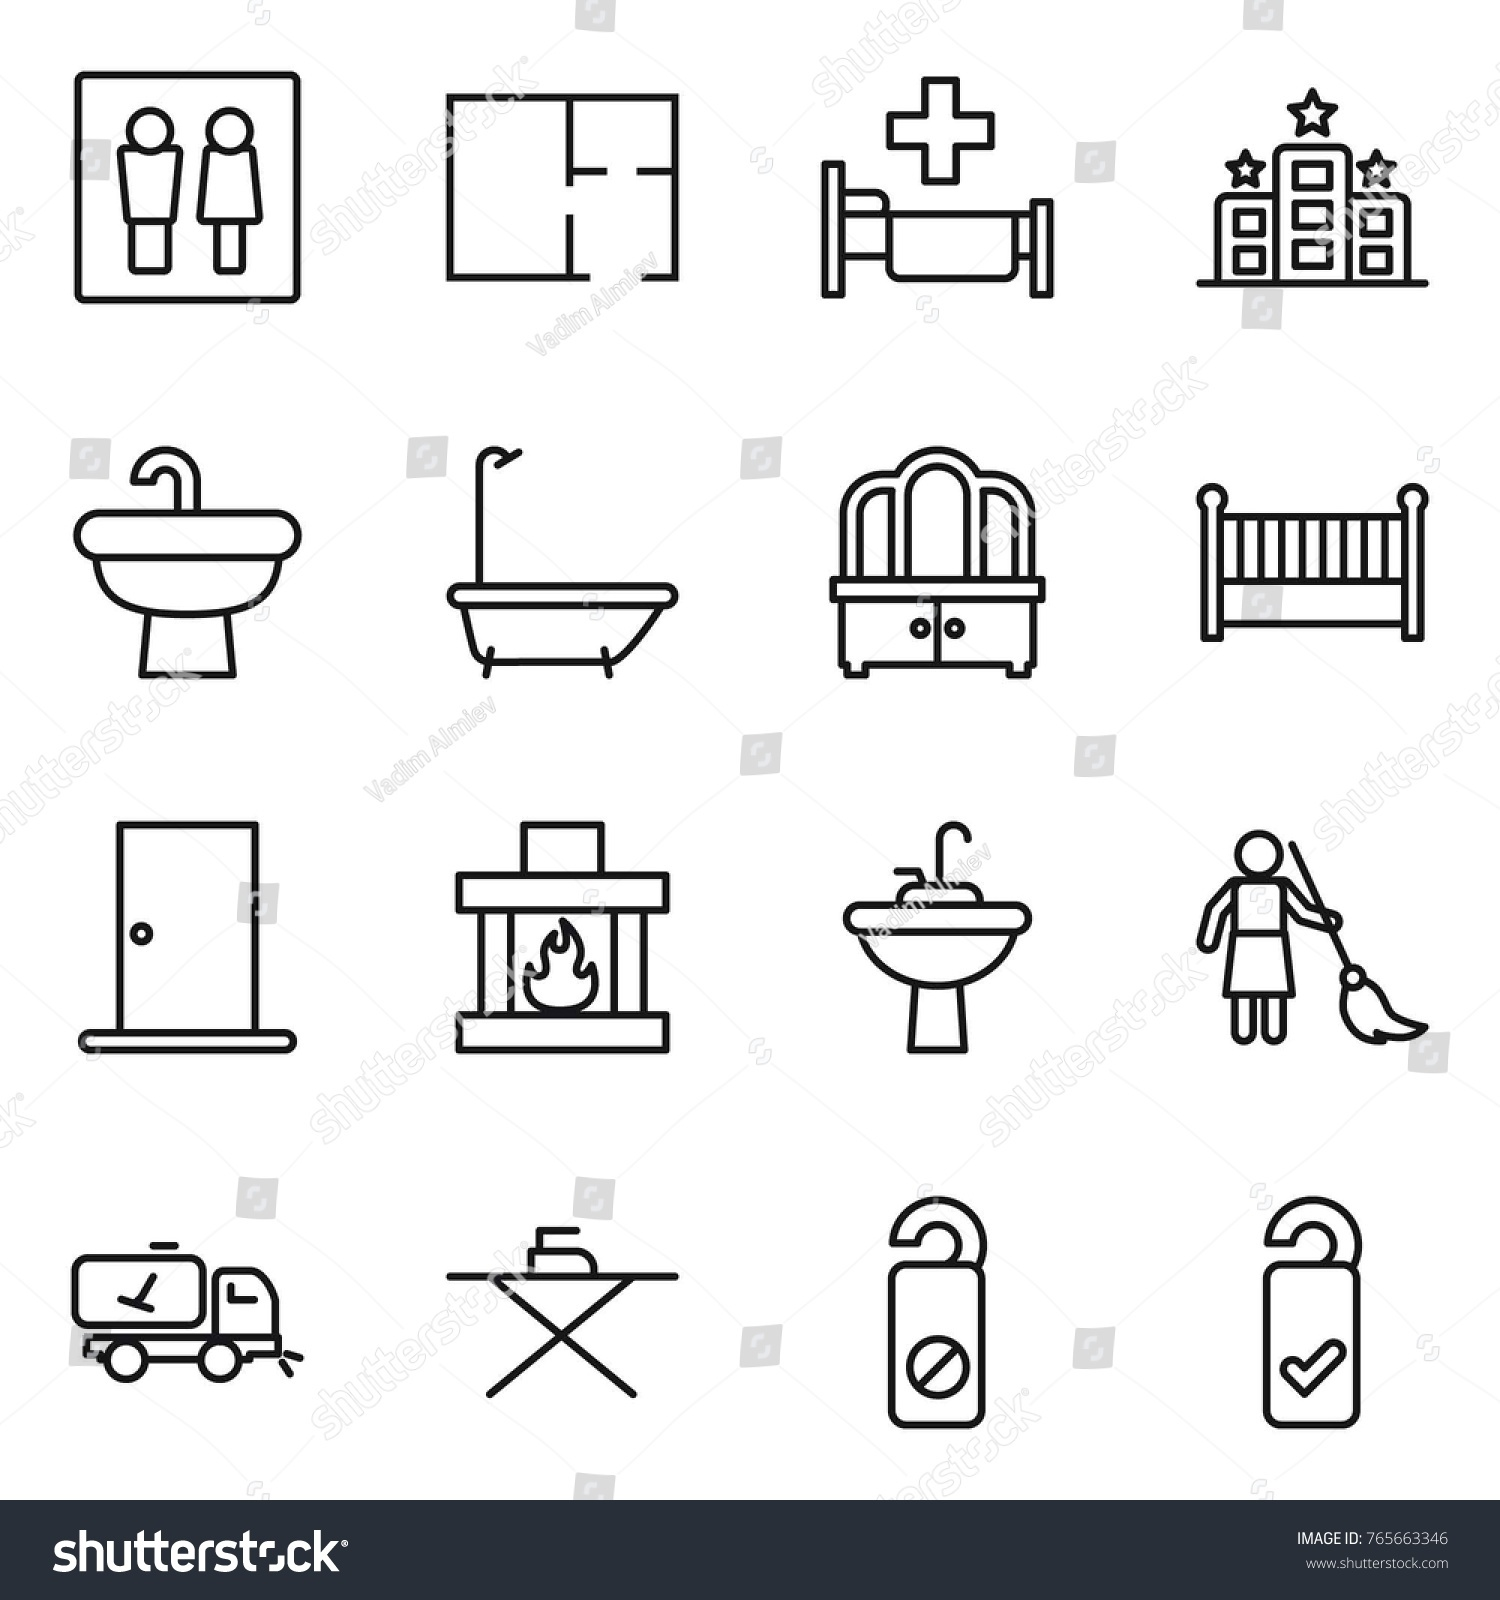 Wc Plan Thin Line Icon Set Wc Plan Stock Vector Royalty Free 765663346